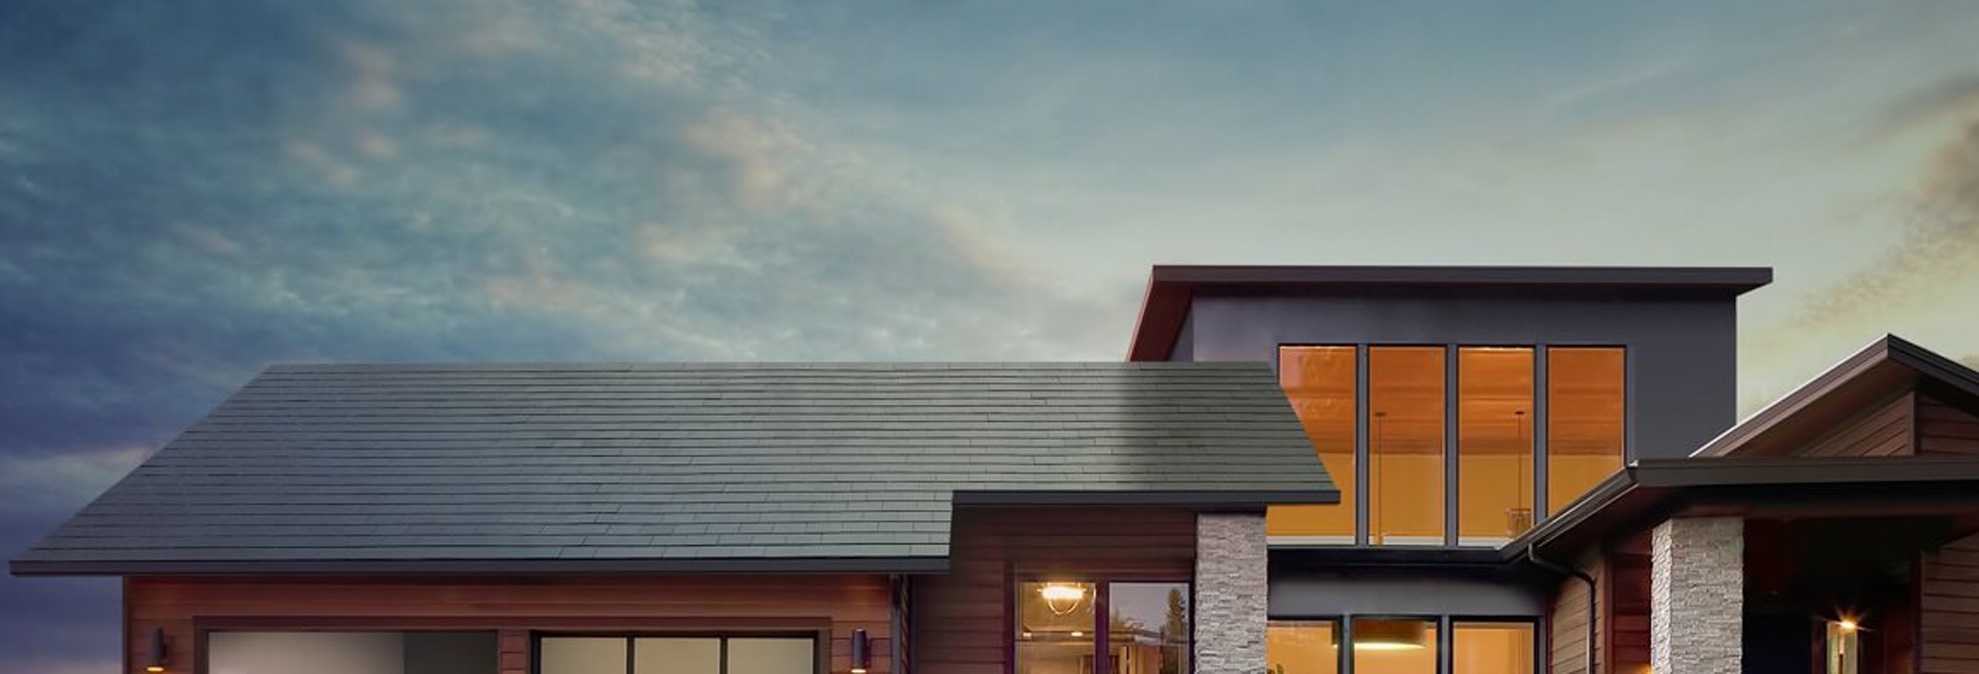 Solar Panel Roof Shingles >> Here S How Much Tesla S New Solar Roof Could Cost Consumer Reports